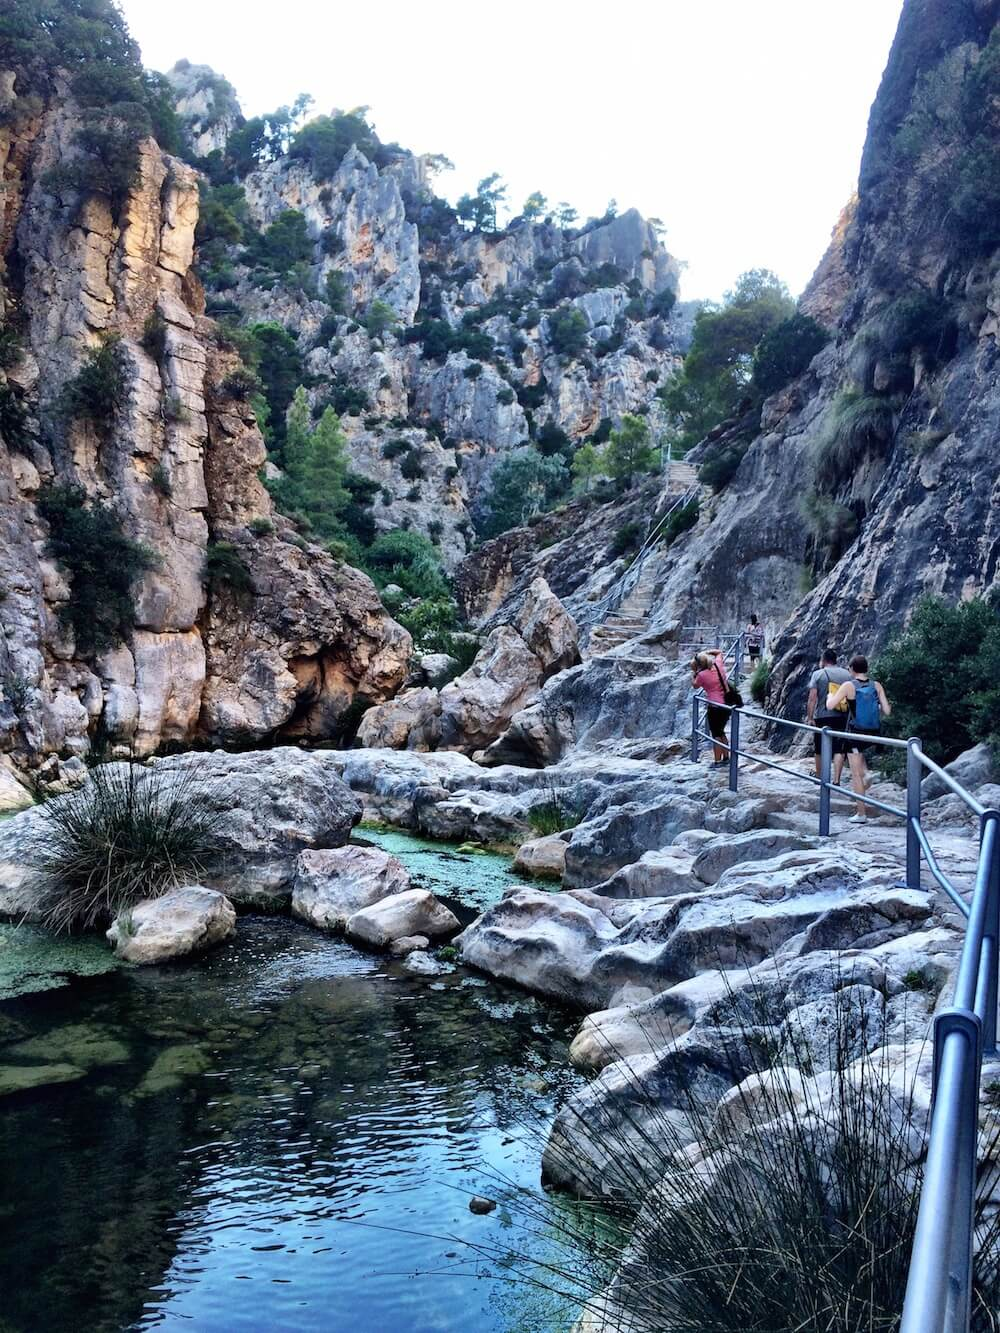 Cool spot in Costa Brava